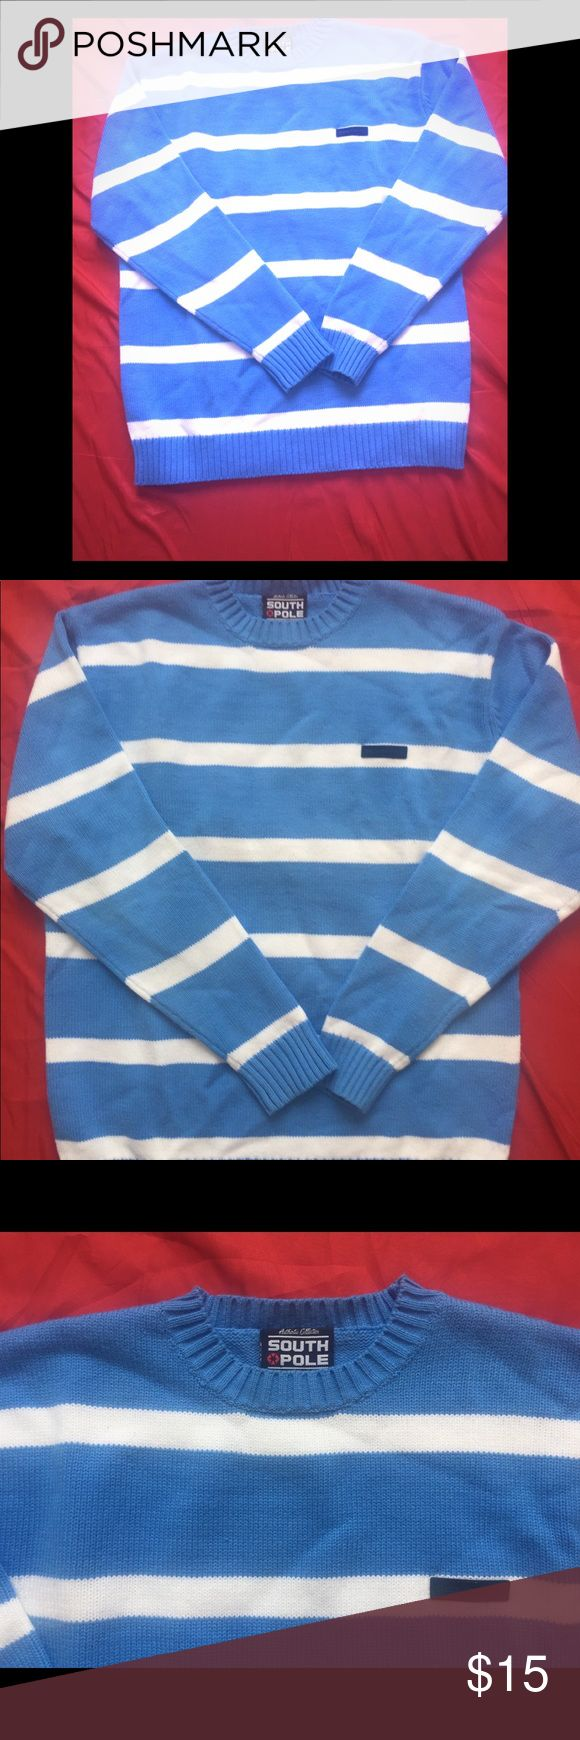 Clothing Gently used South Pole sweater , South Pole Sweaters